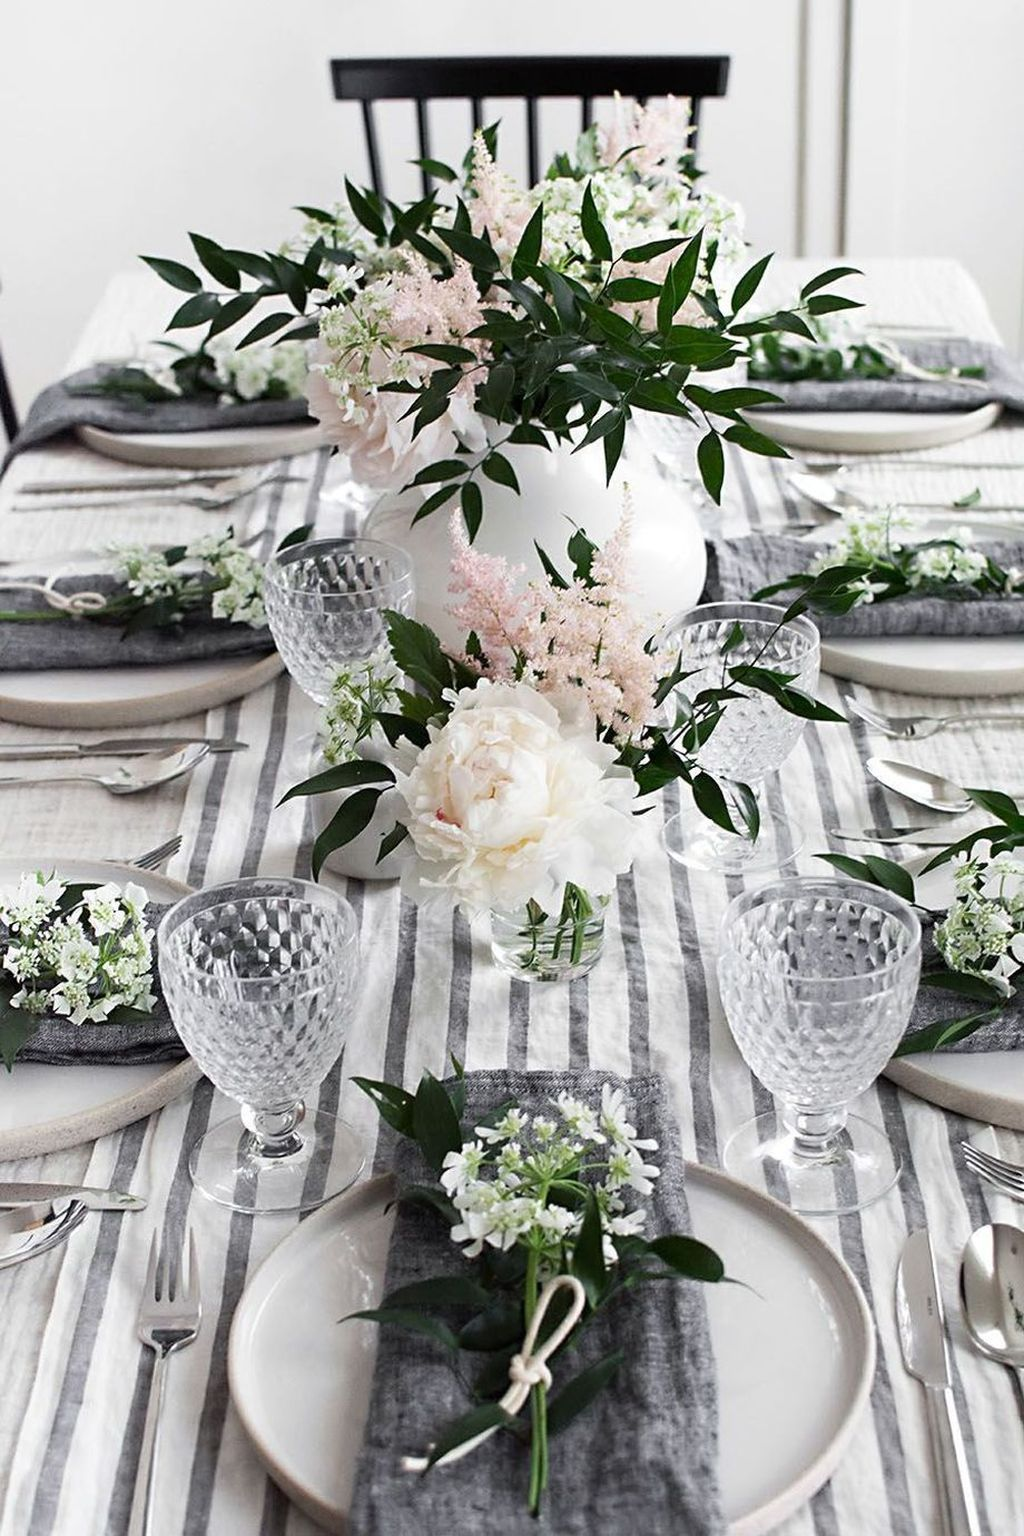 36 Stunning Spring Dining Room Table Centerpiece Ideas